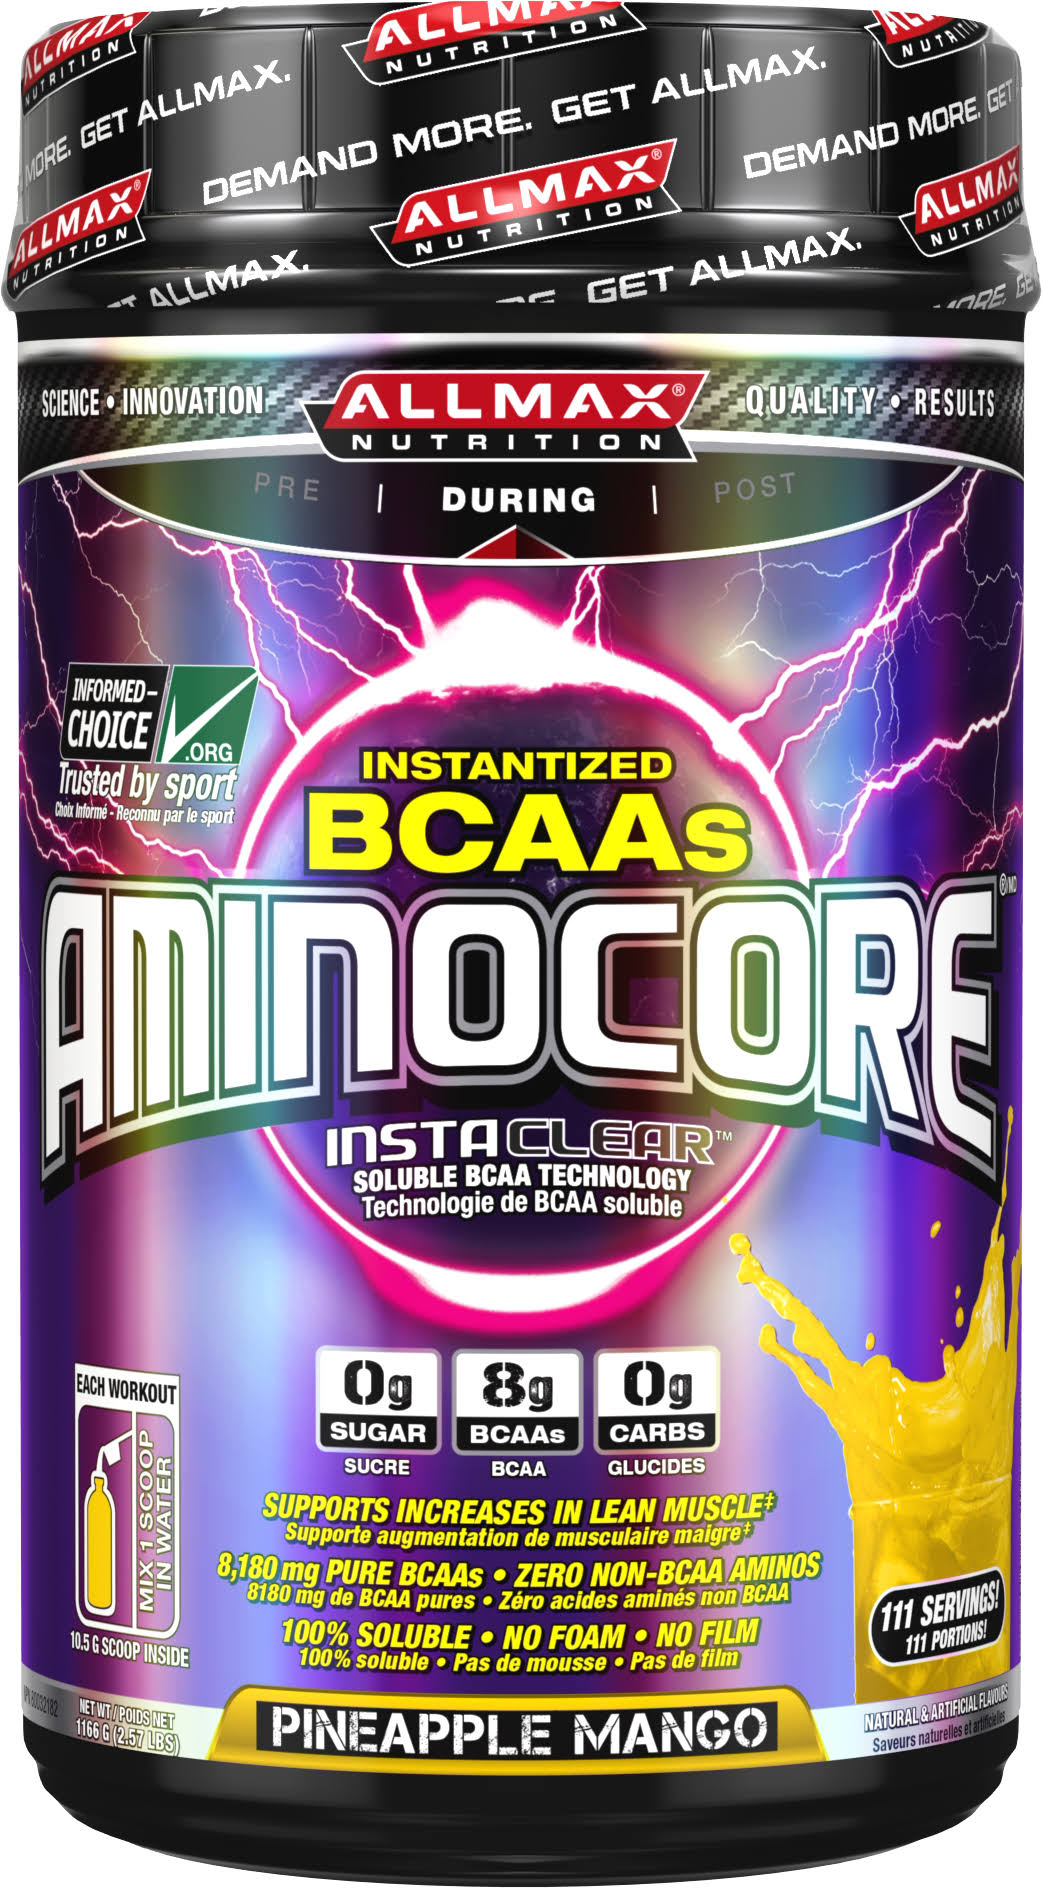 Allmax Nutrition Aminocore Powder Supplement - Caribbean Tropical Fruit, 1000g